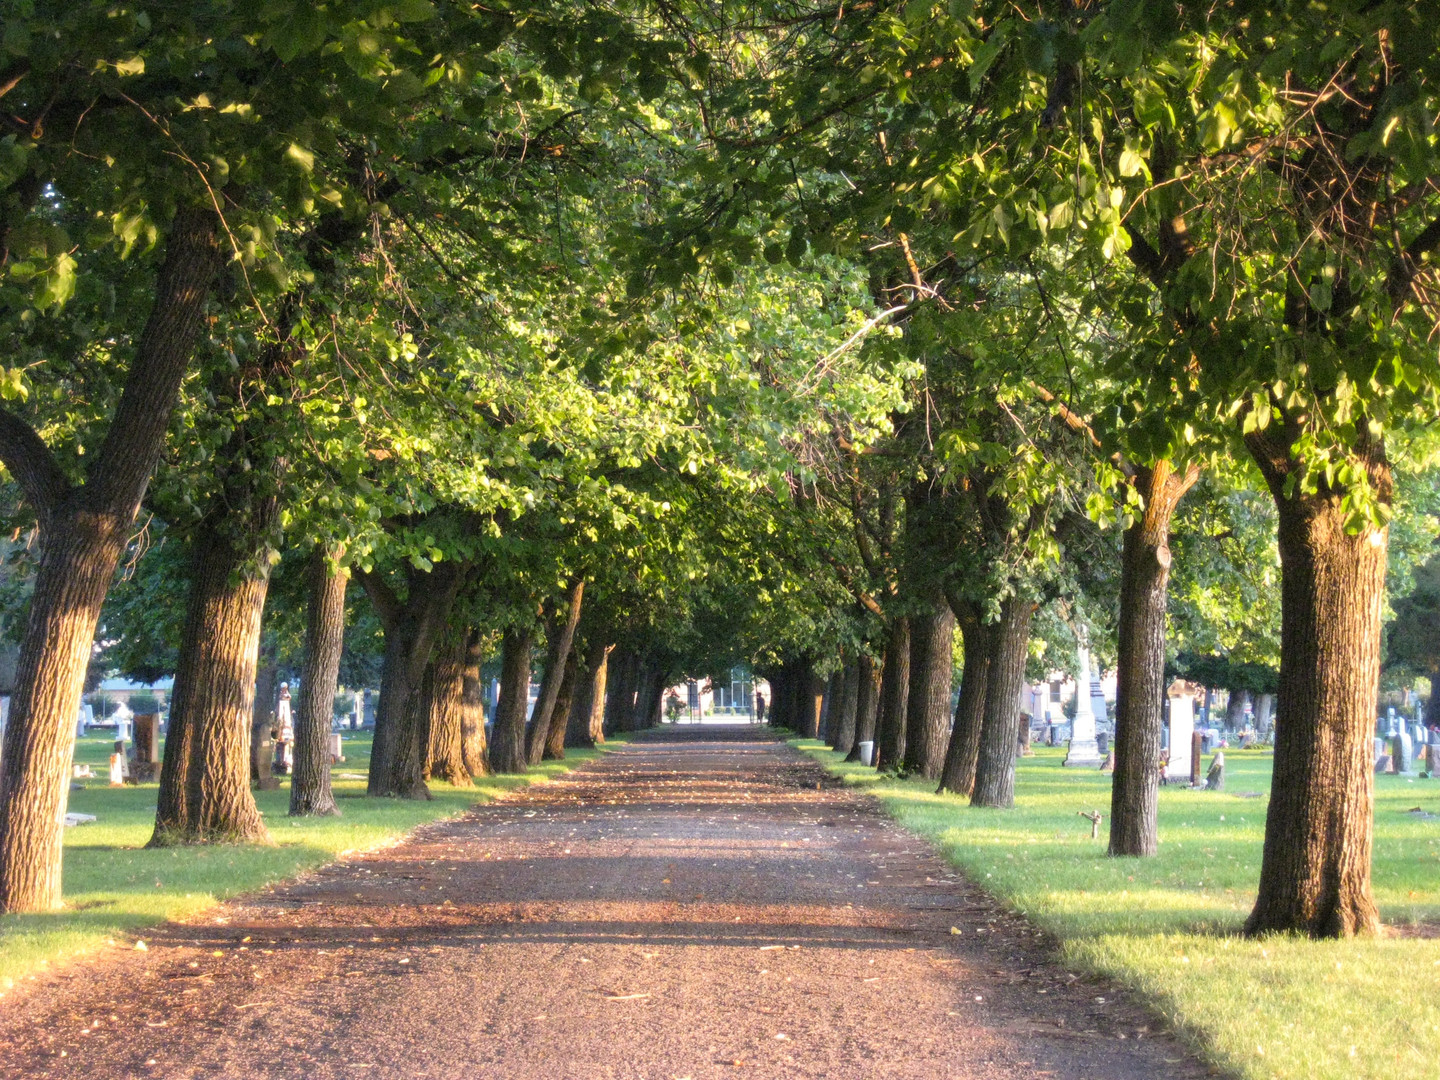 Road Bordered by Trees